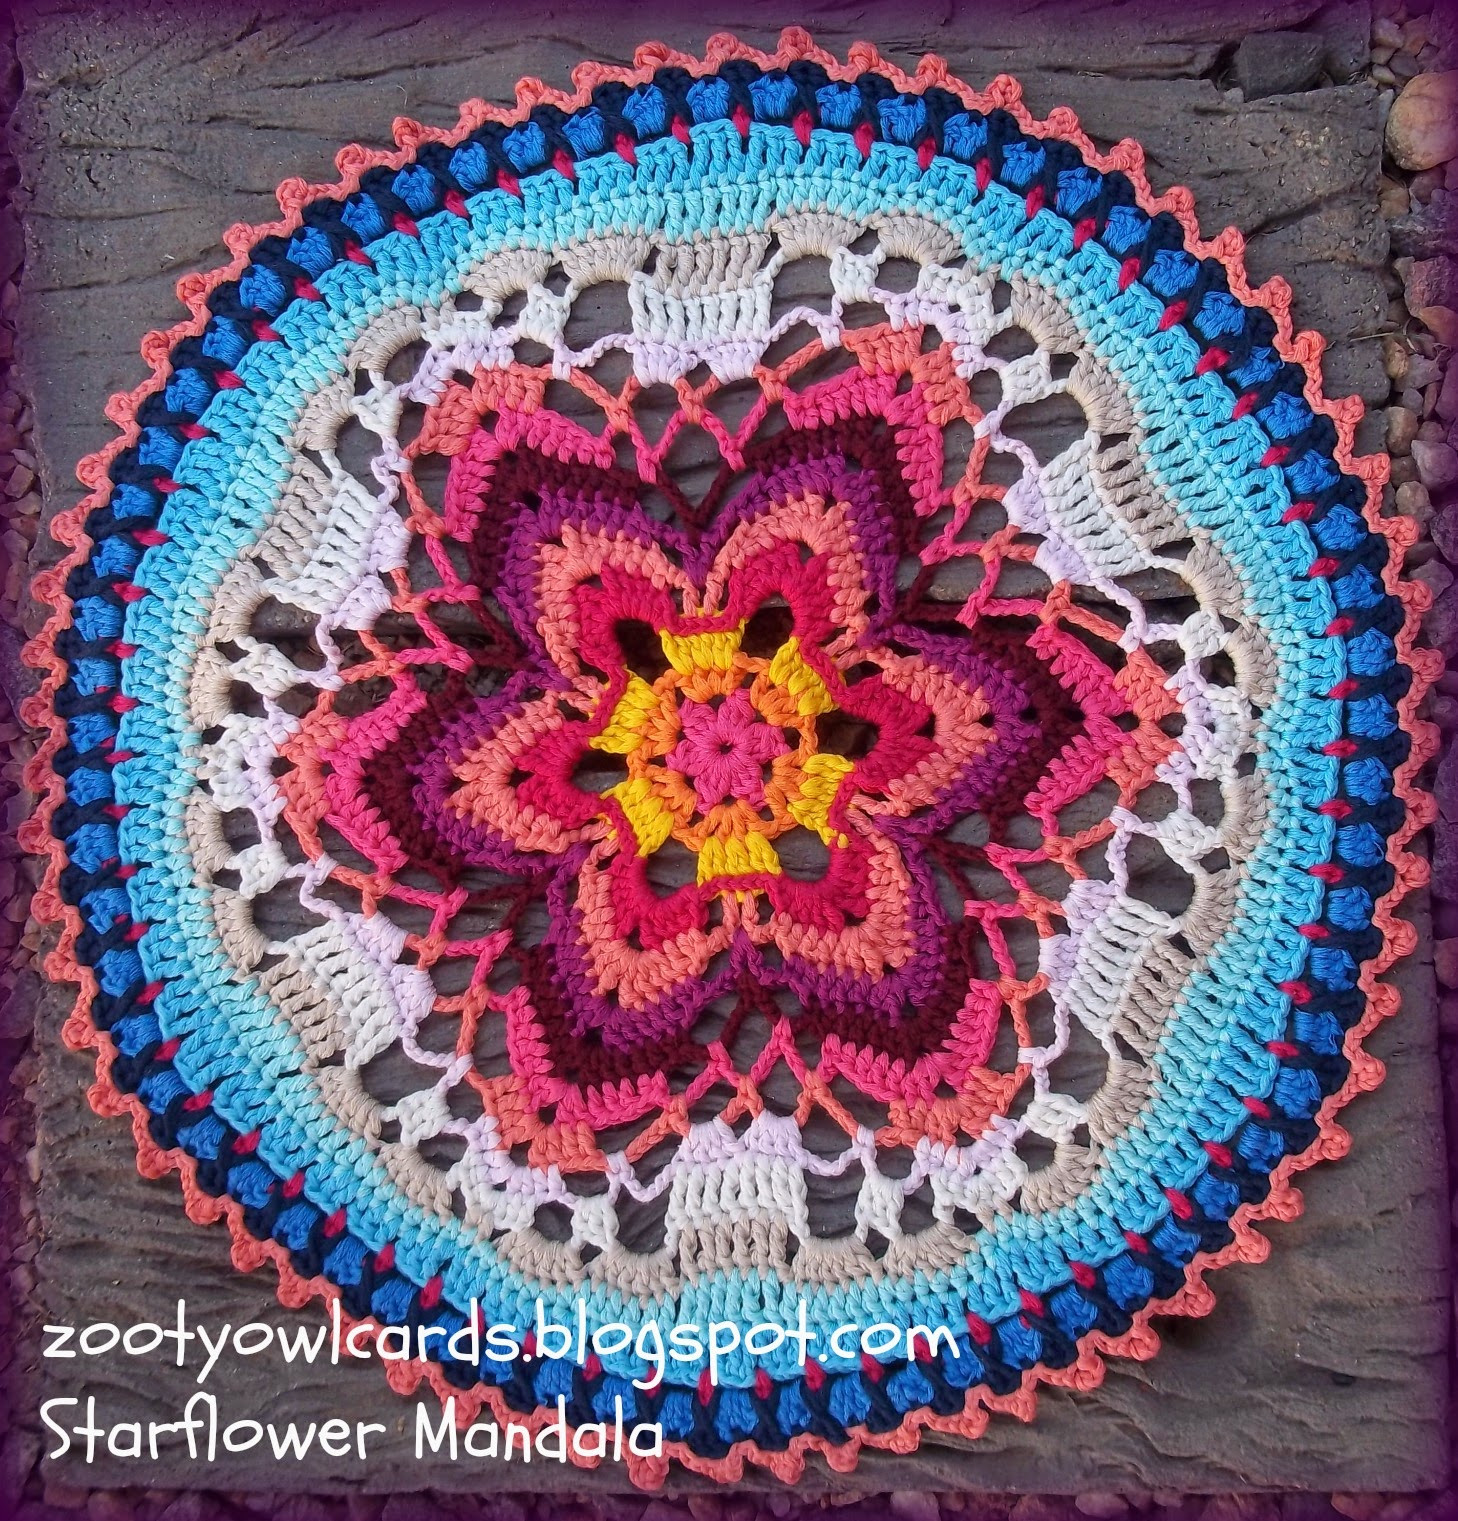 Crochet Mandalas Luxury Zooty Owl S Crafty Blog Starflower Mandala Row by Row Of Incredible 41 Pics Crochet Mandalas